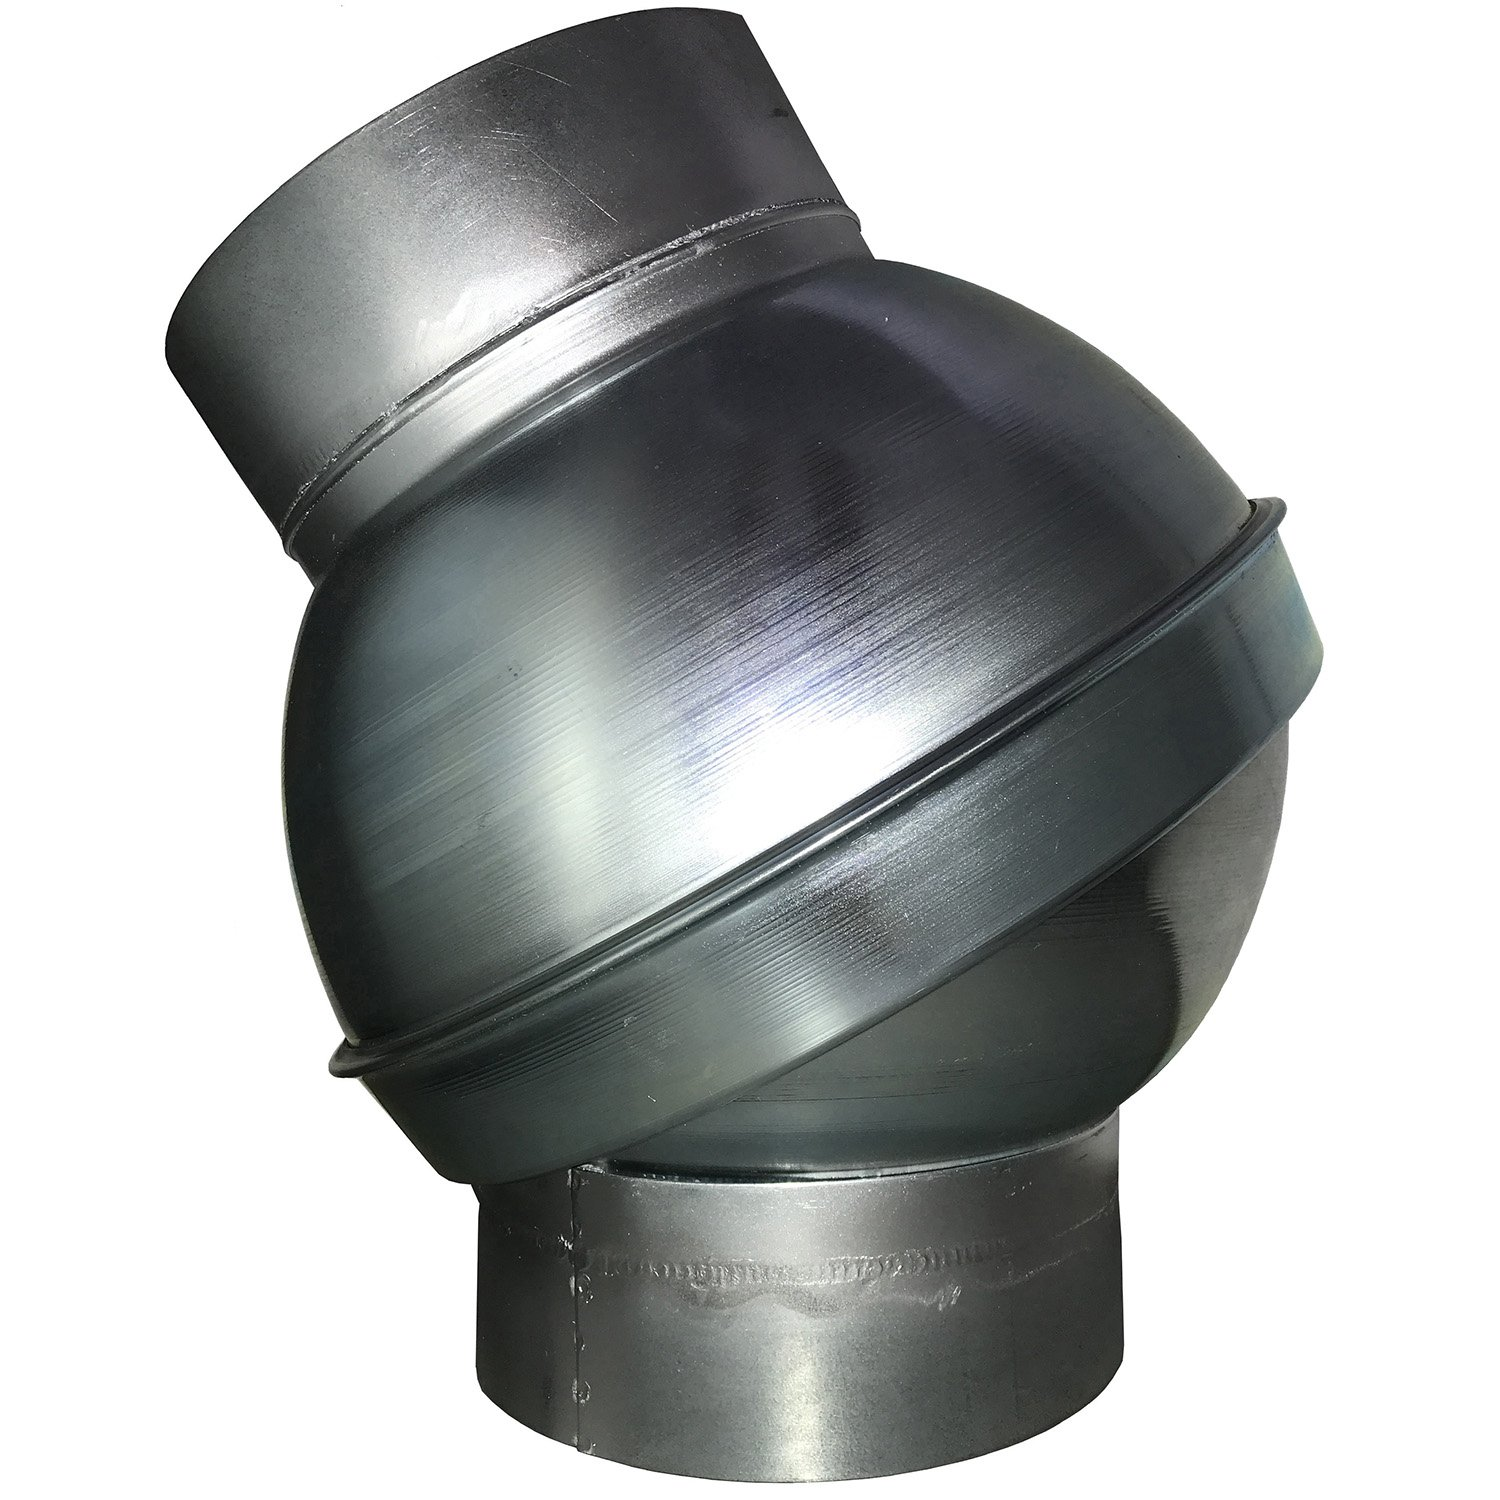 Ball Joints Piping : Ball joint swivel air handling systems